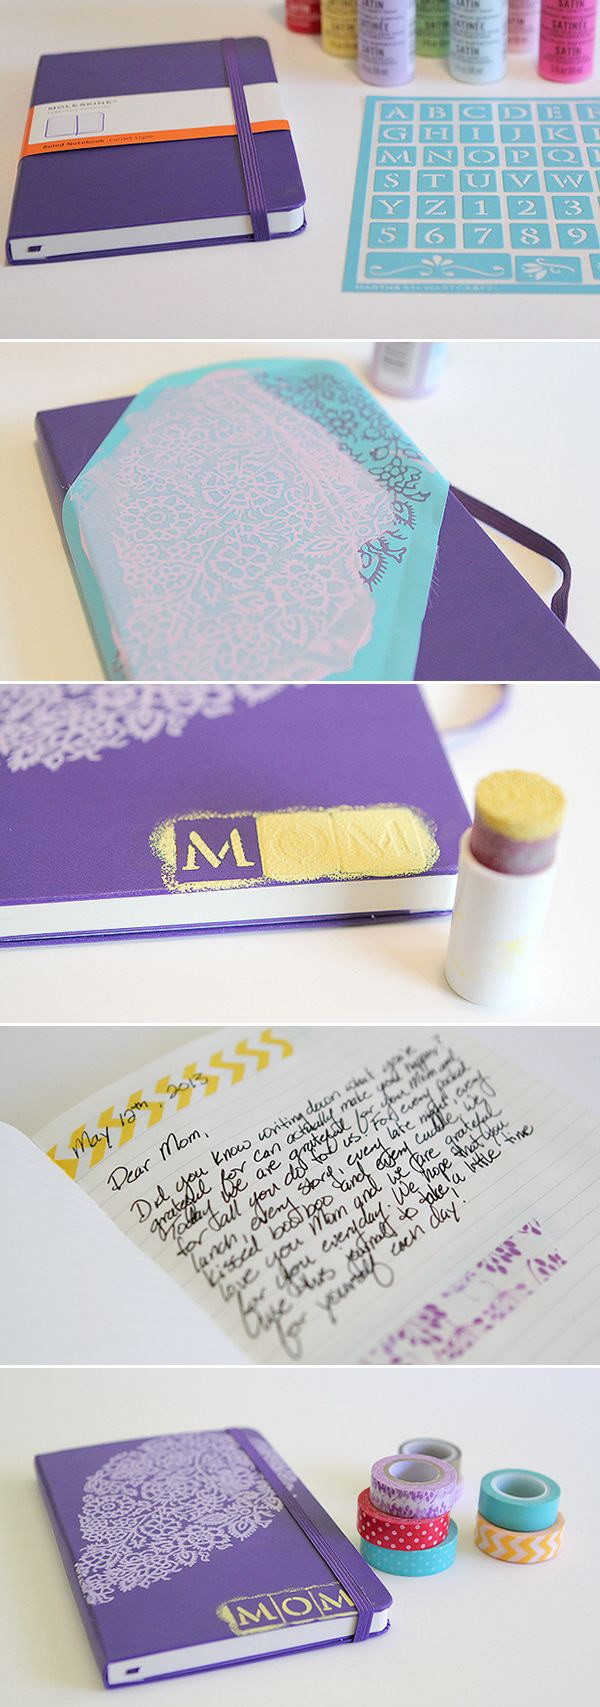 DIY Gift For Your Mom  20 Heartfelt DIY Gifts for Mom Noted List